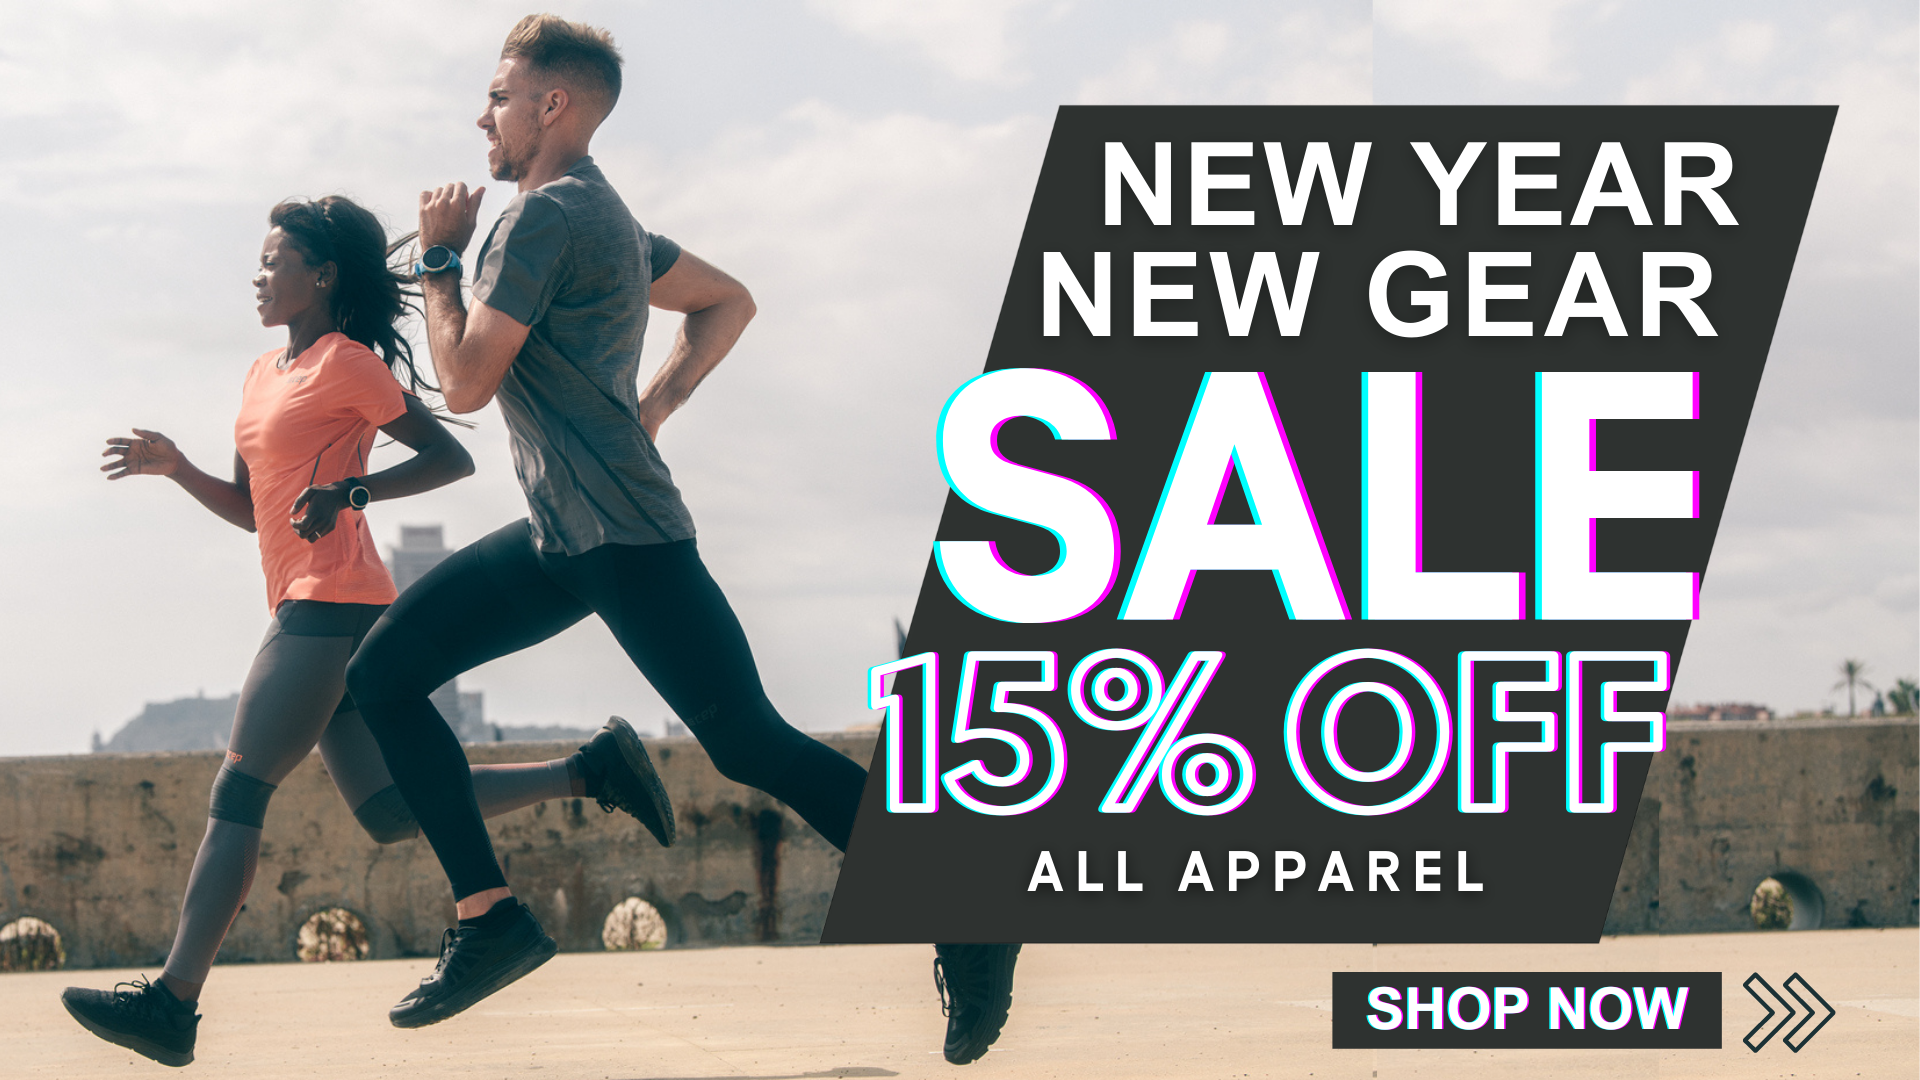 Buy More Save More Apparel Sale